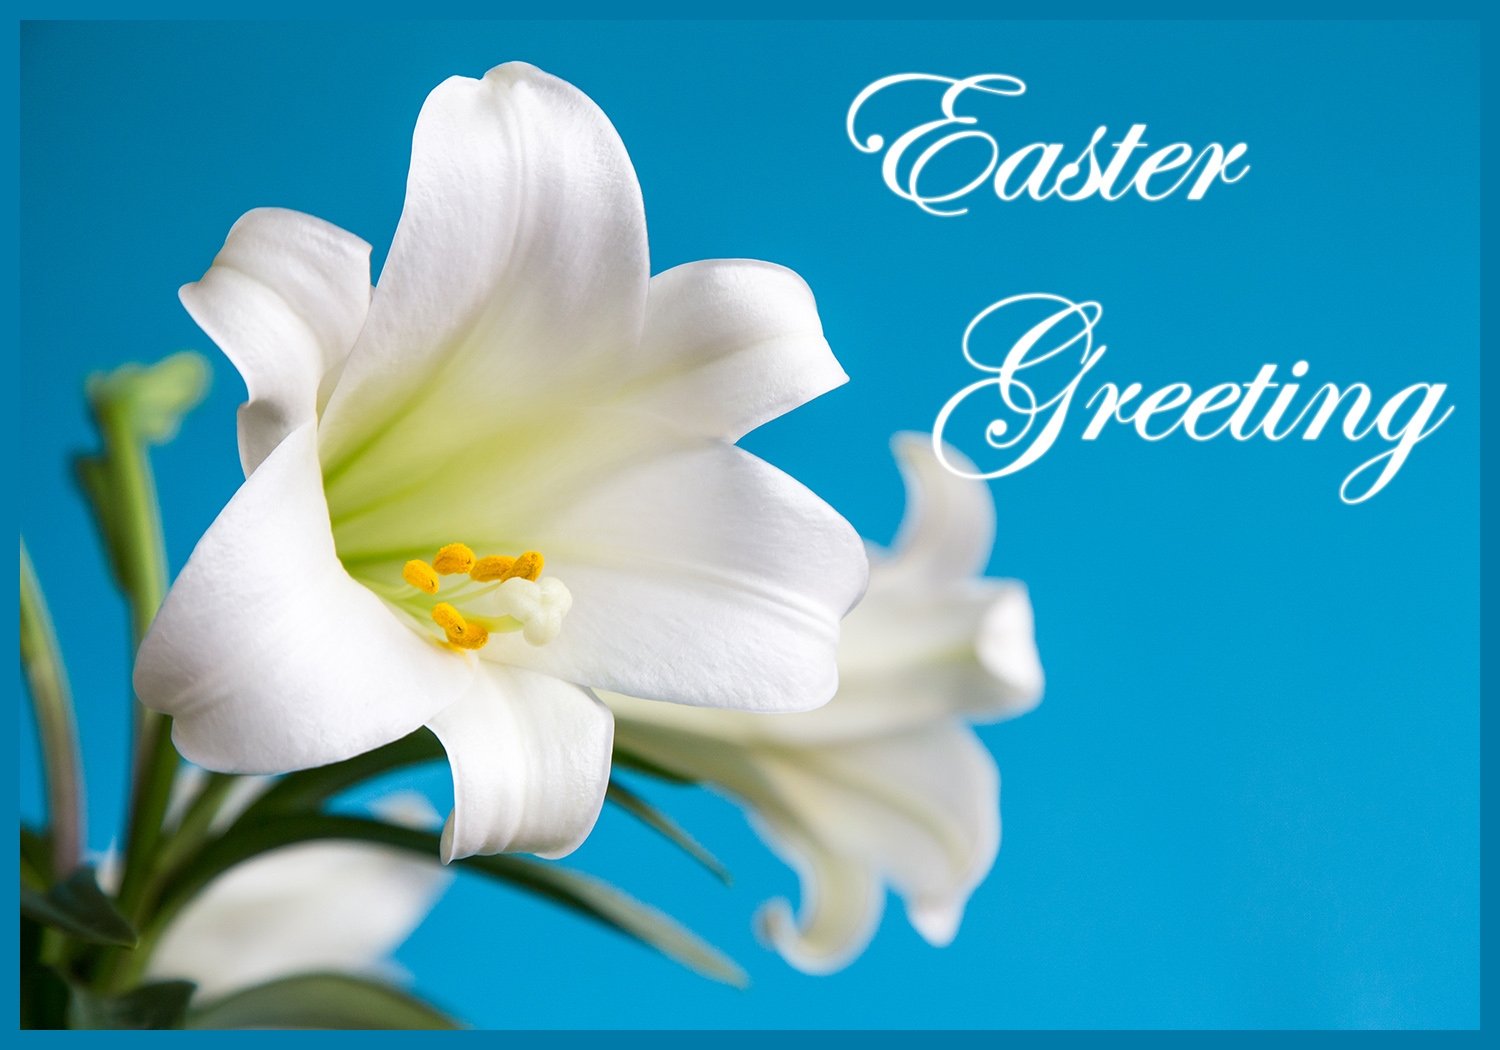 Free easter cards free printable greeting cards easter lilly greeting m4hsunfo